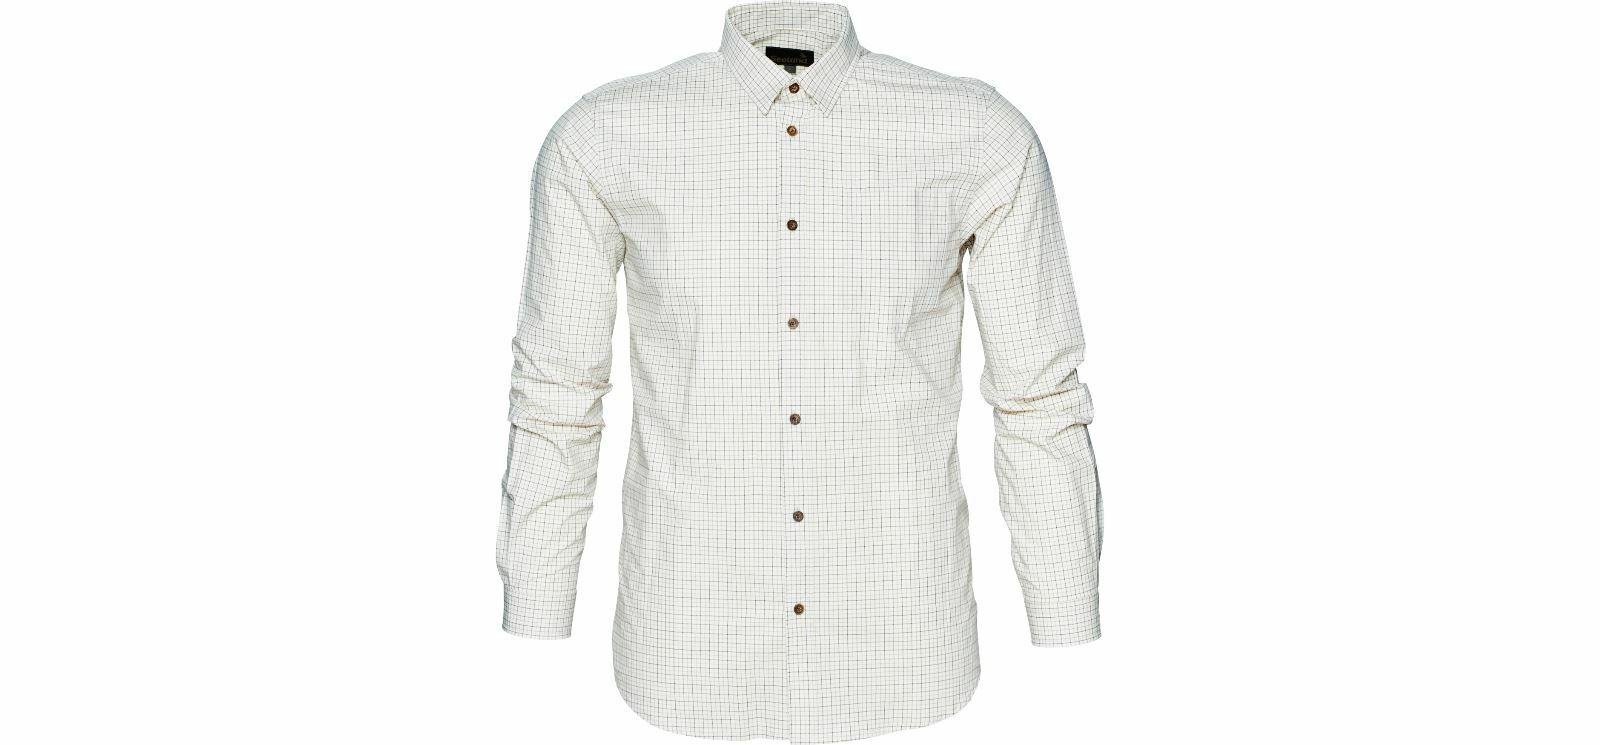 Seeland Colin Camisa - Bitter Chocolate Cuadros - Hombres